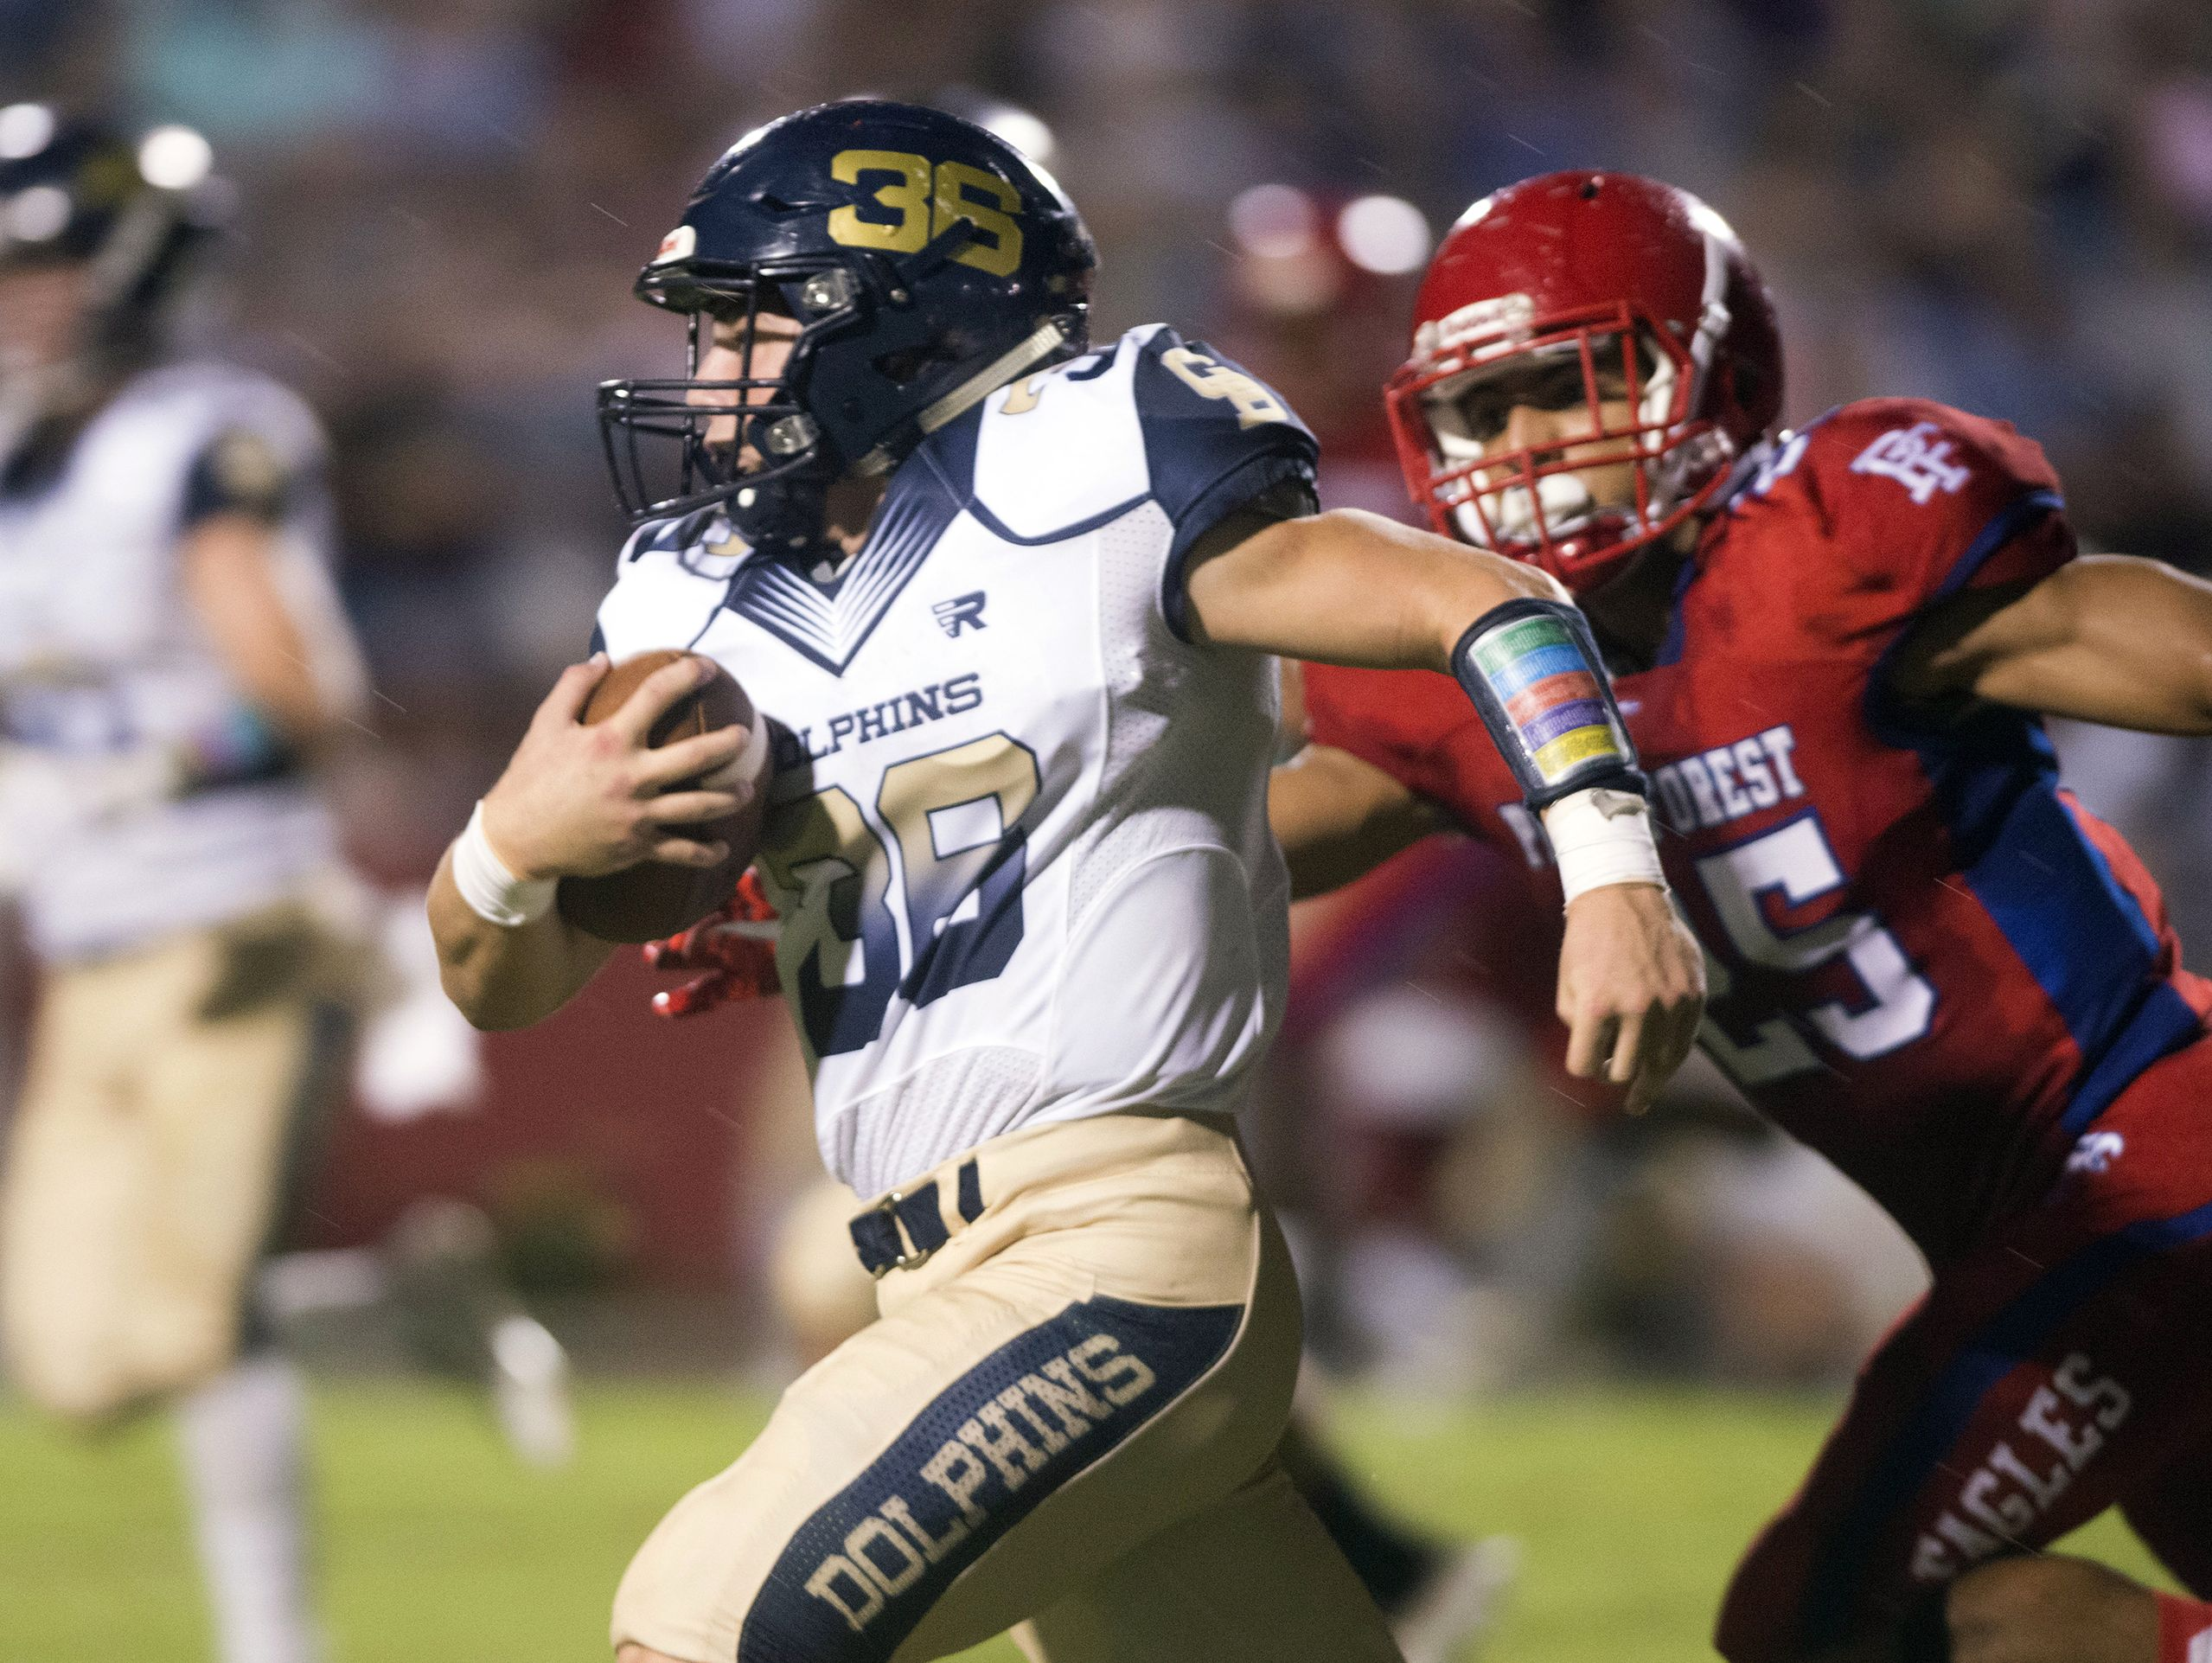 Gulf Breeze running back Tyler Dittmer, (No. 36) slips past the Pine Forest middle line backer, Nolan Rigby, (No. 25) to pick up extra yards against the Eagles Friday night.